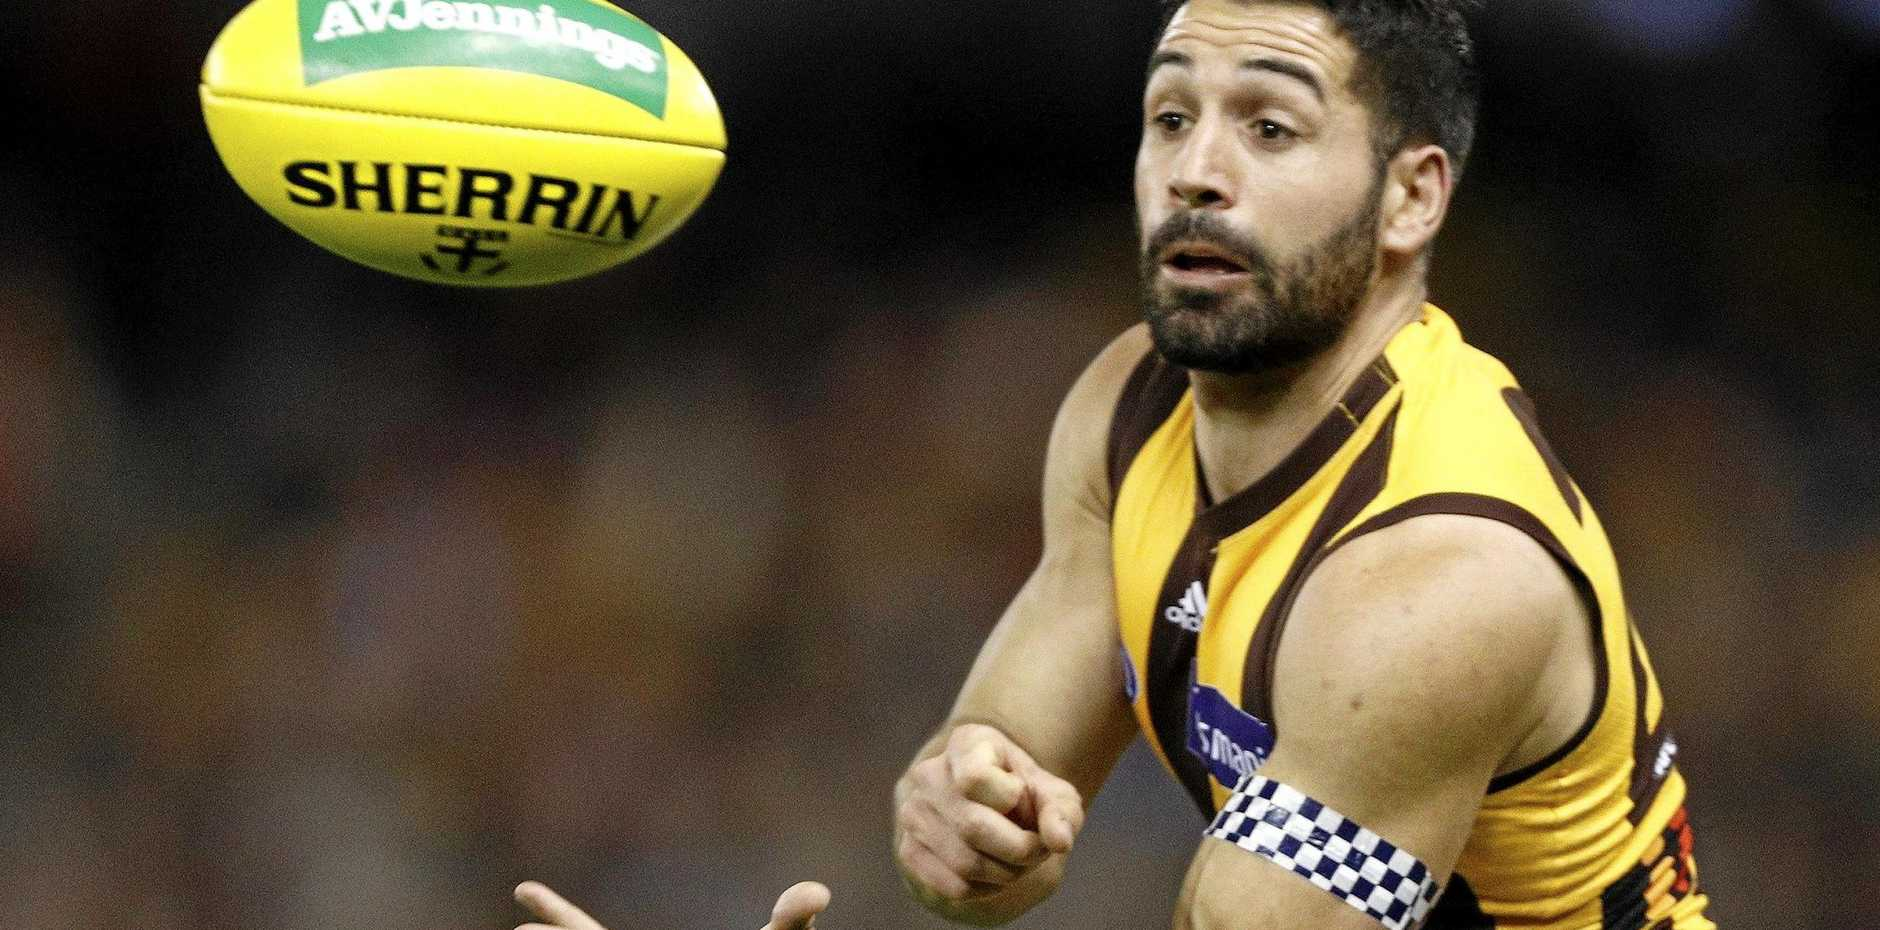 Paul Puopolo of the Hawks hand passes the ball during the Round 22 AFL match between the St Kilda Saints and the Hawthorn Hawks at Etihad Stadium in Melbourne, Saturday, August 18, 2018.